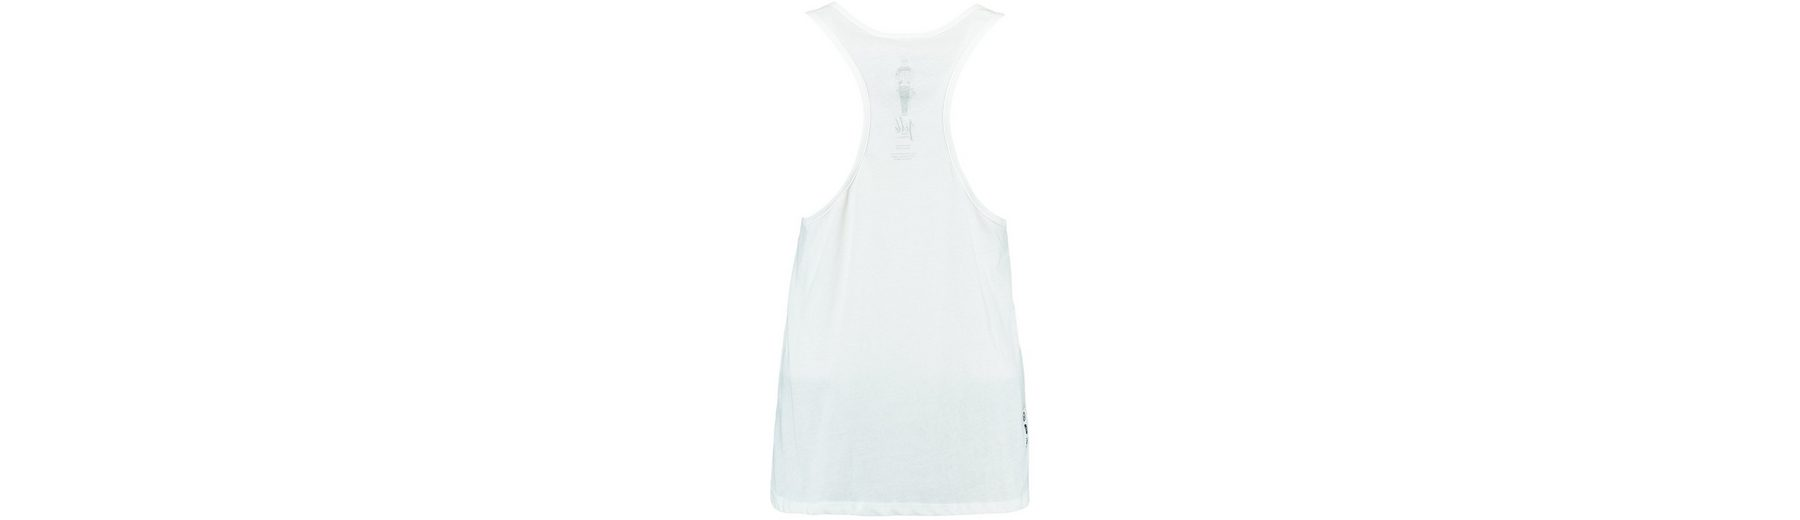 O'Neill Tanktops Jelle tanktop Rabatt Online-Shopping Billigste Online IE0Uk1Am